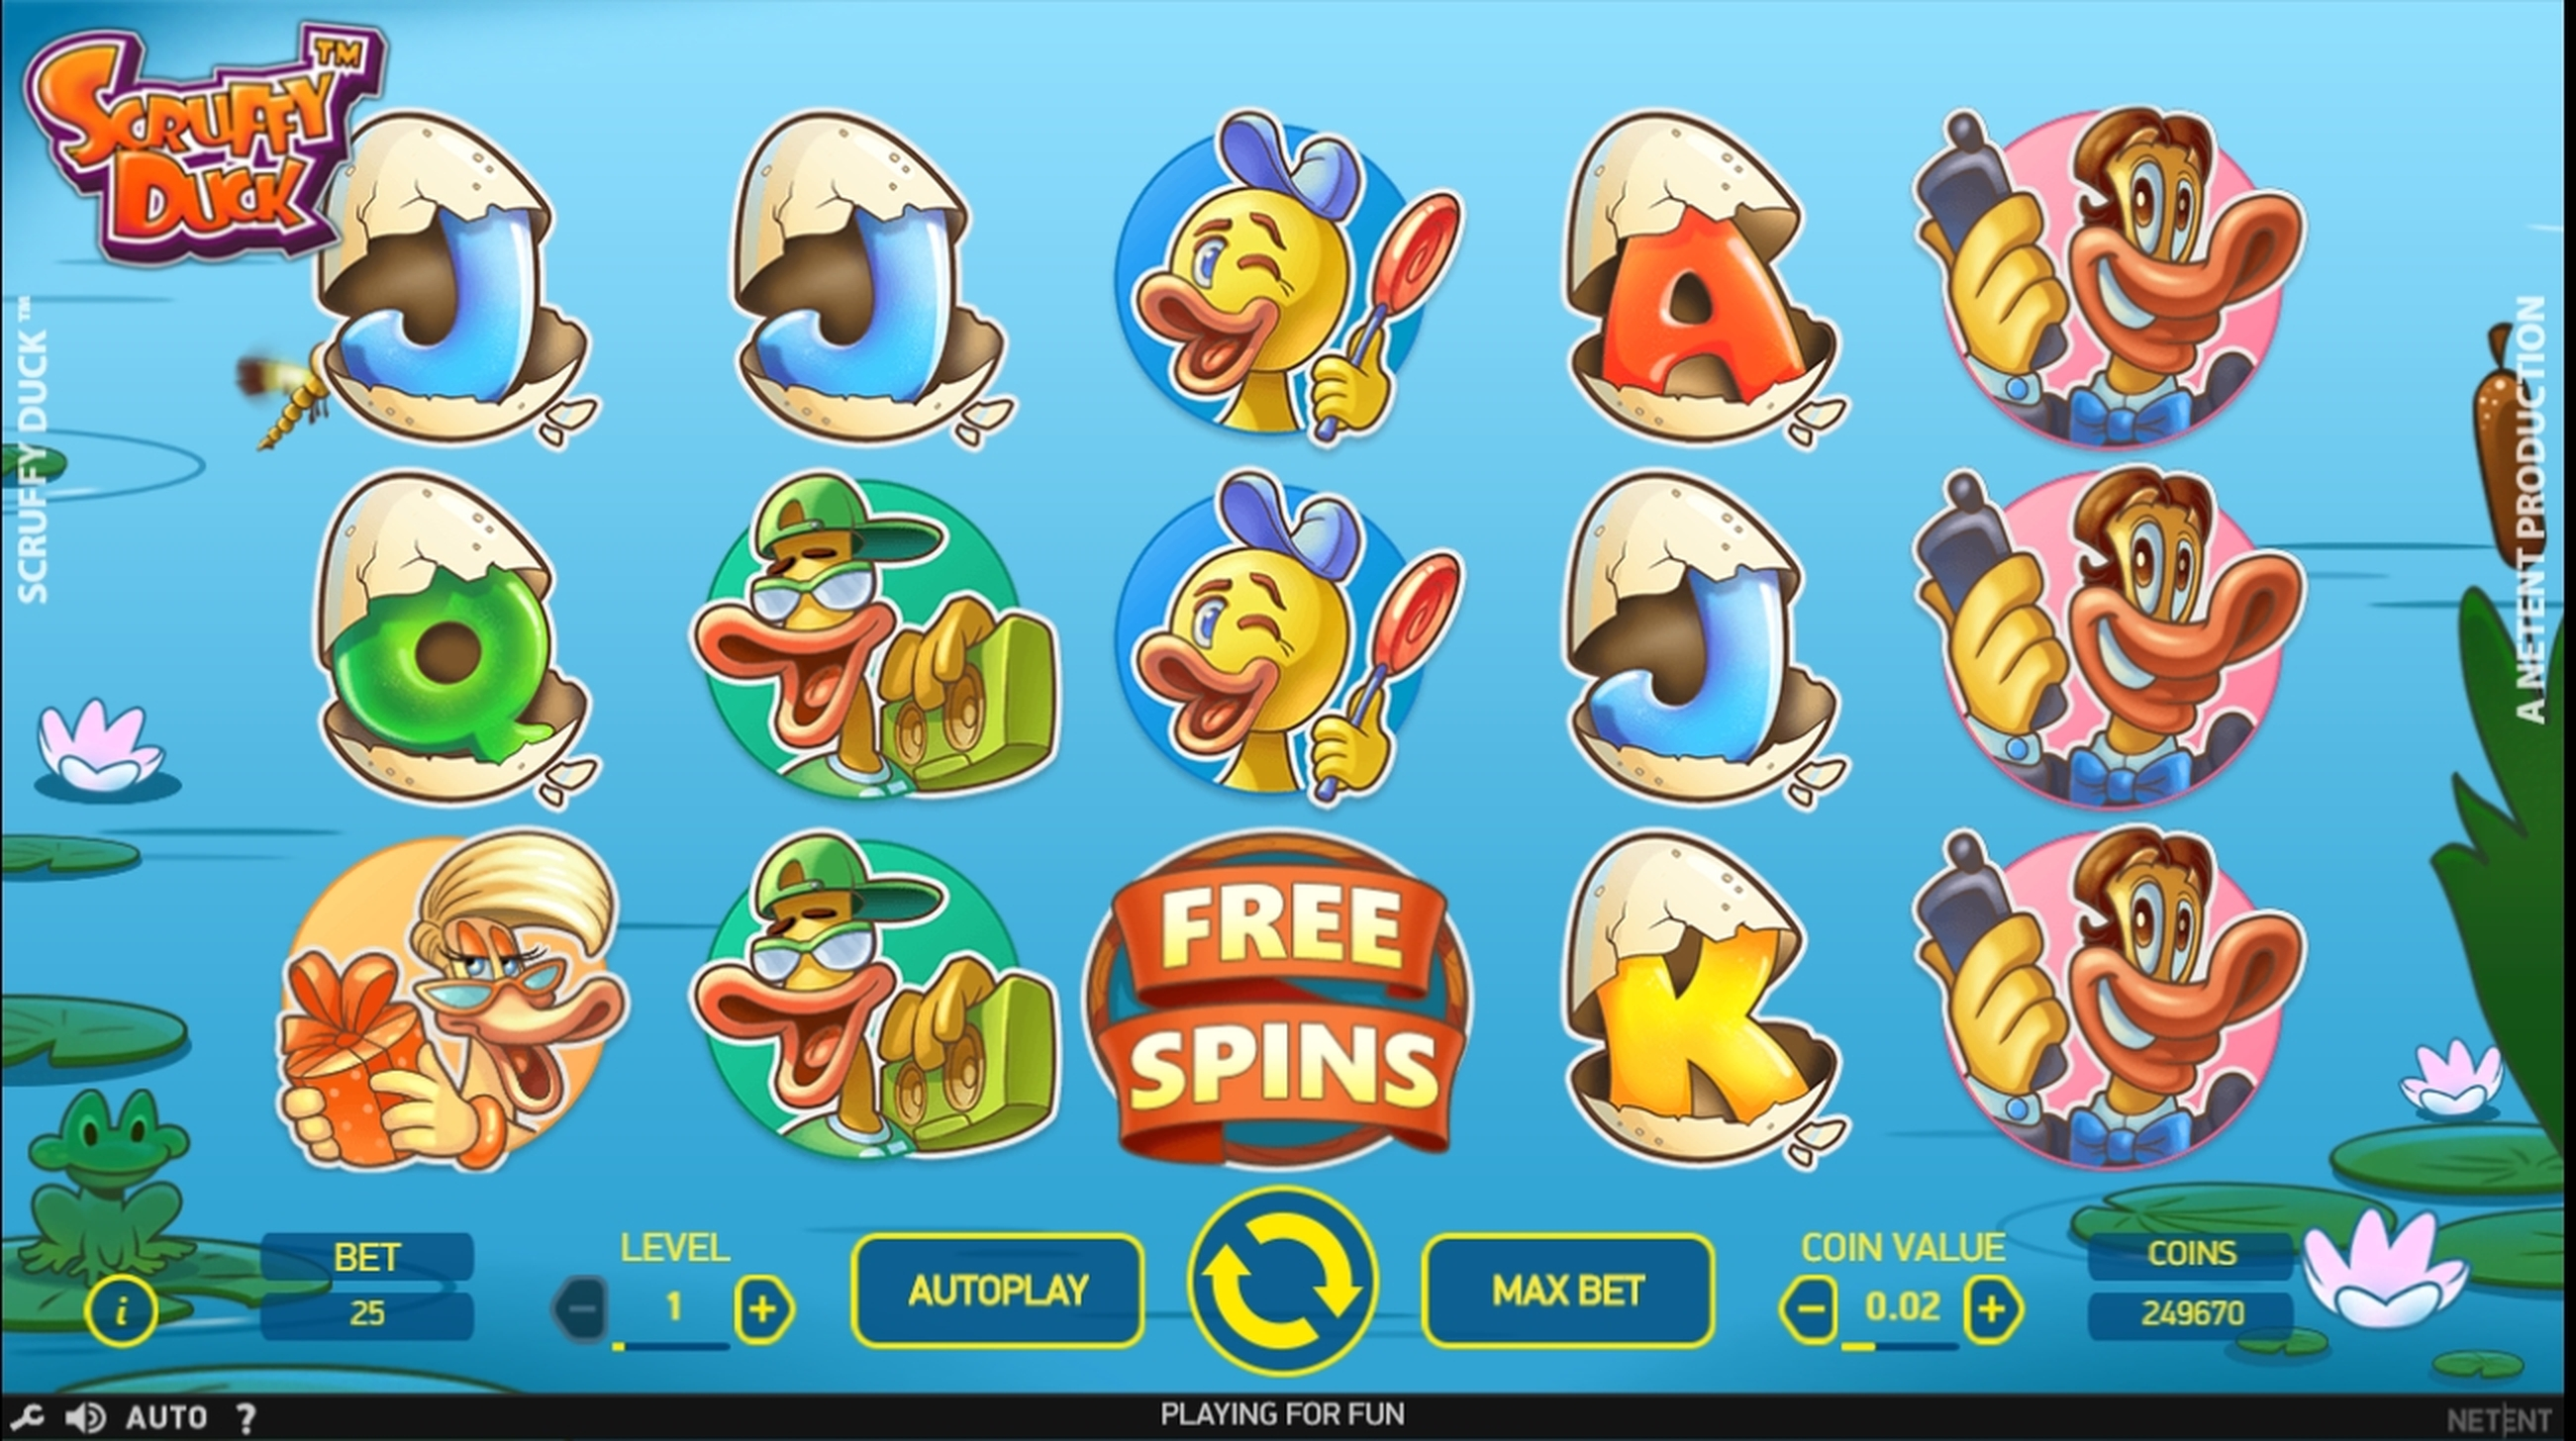 Reels in Scruffy Duck Slot Game by NetEnt